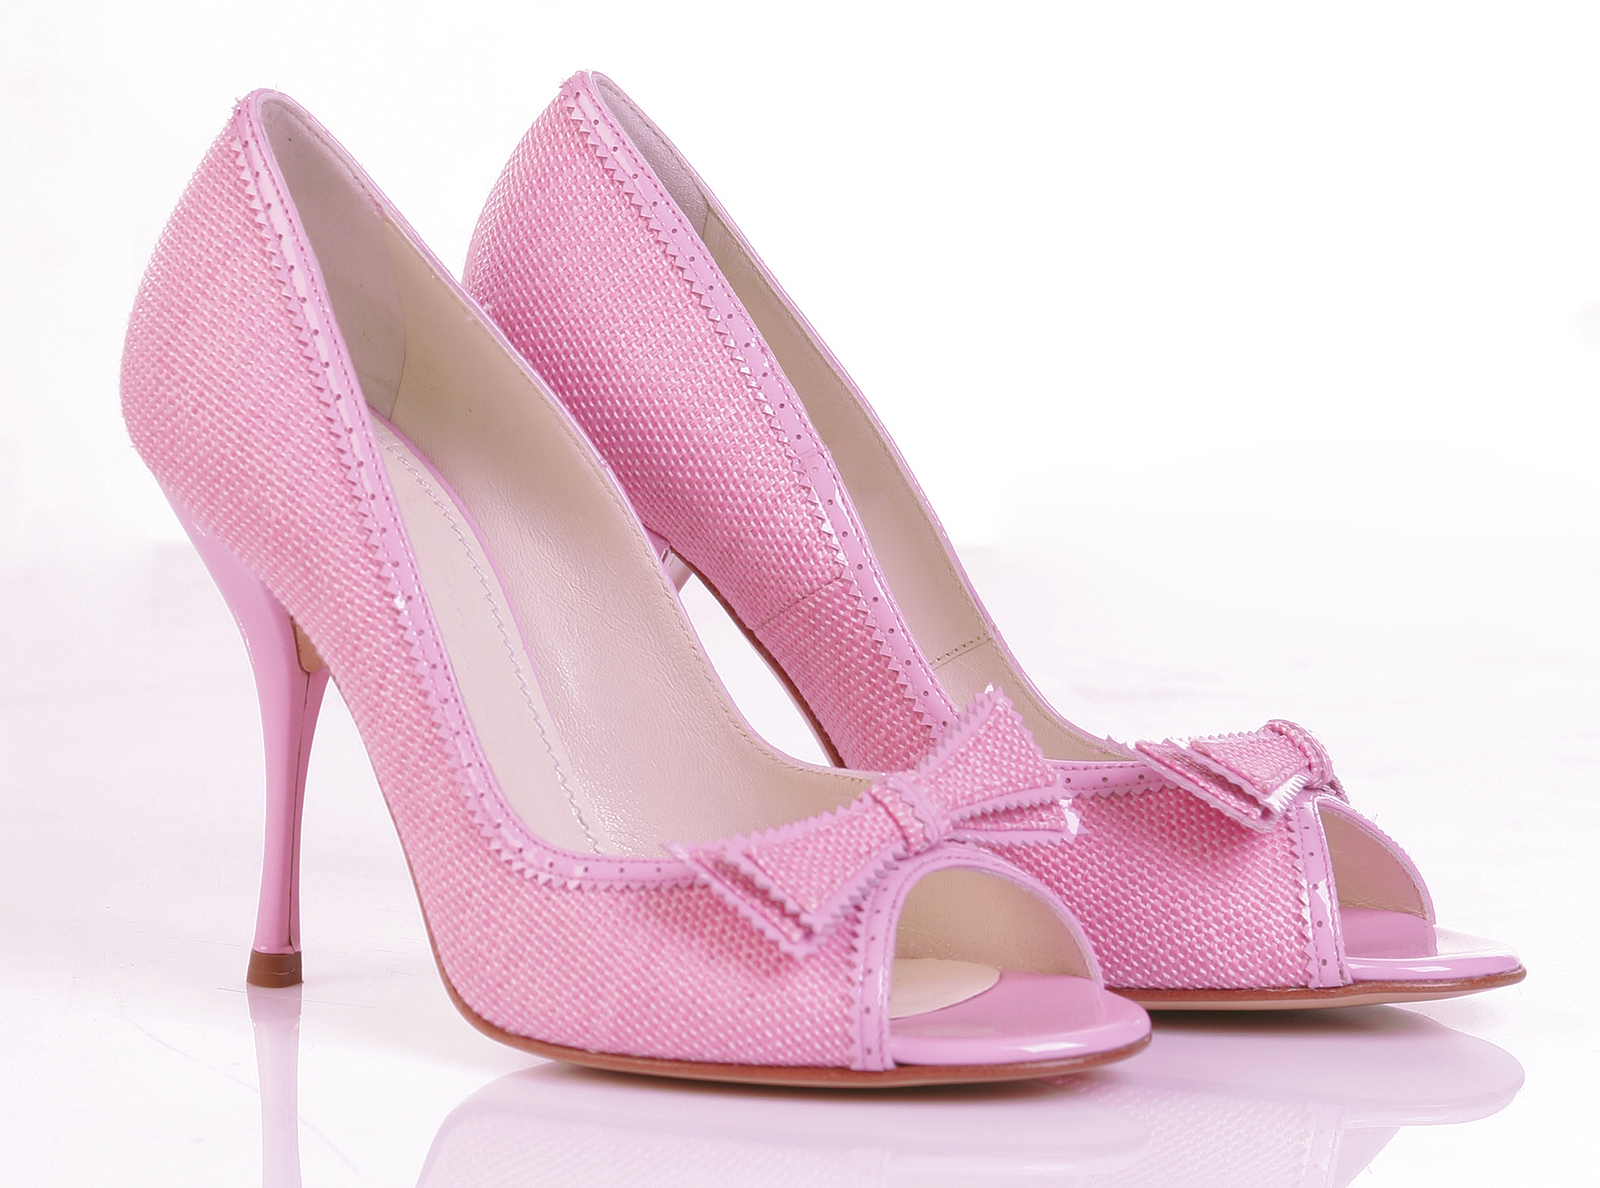 s shoes images pink heels hd wallpaper and